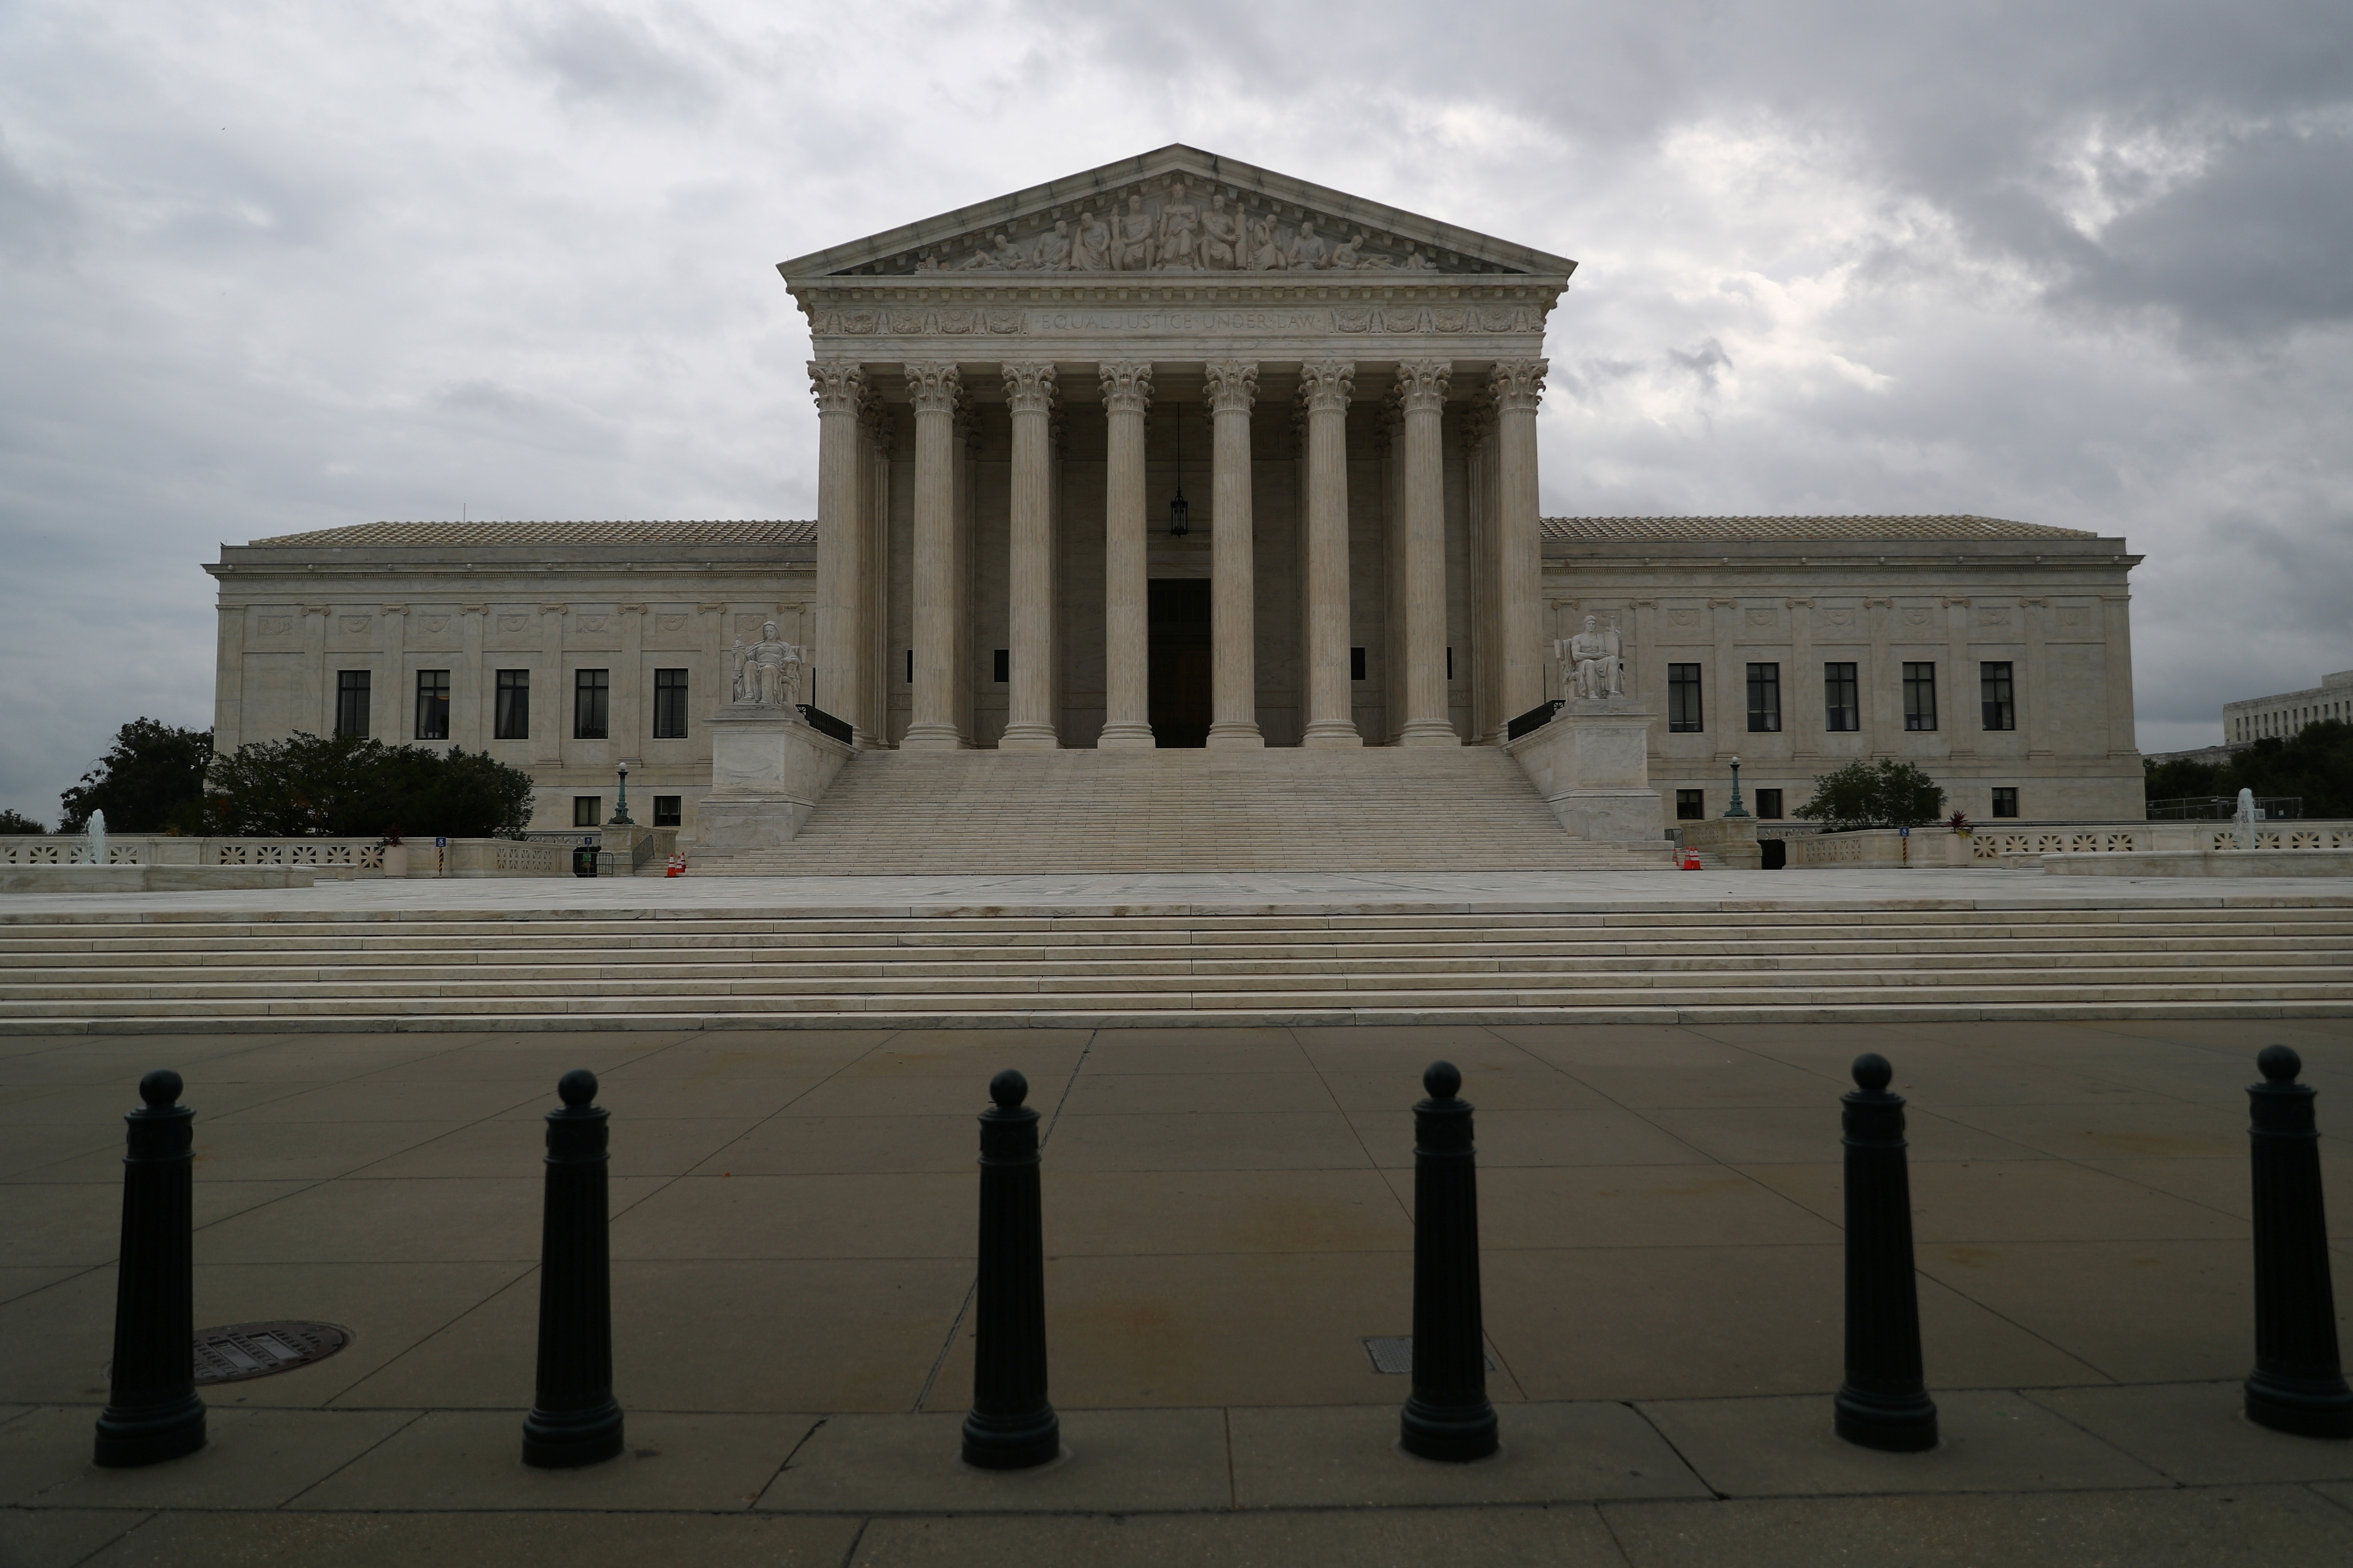 Storm clouds roll in over the U.S. Supreme Court in Washington, September 1, 2021. REUTERS/Tom Brenner